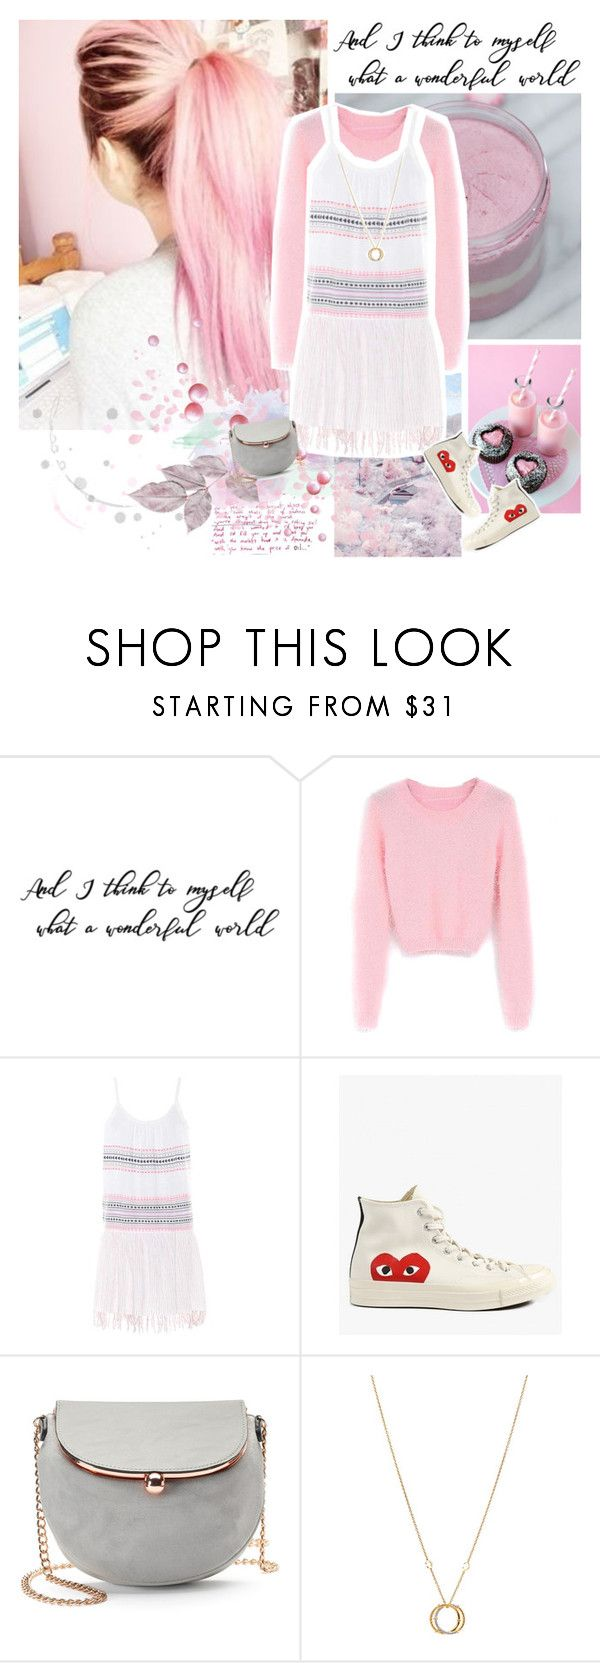 """""""wonderful world."""" by fmk-japanesefashion ❤ liked on Polyvore featuring WithChic, Lemlem, Comme des Garçons, LC Lauren Conrad and Charriol"""